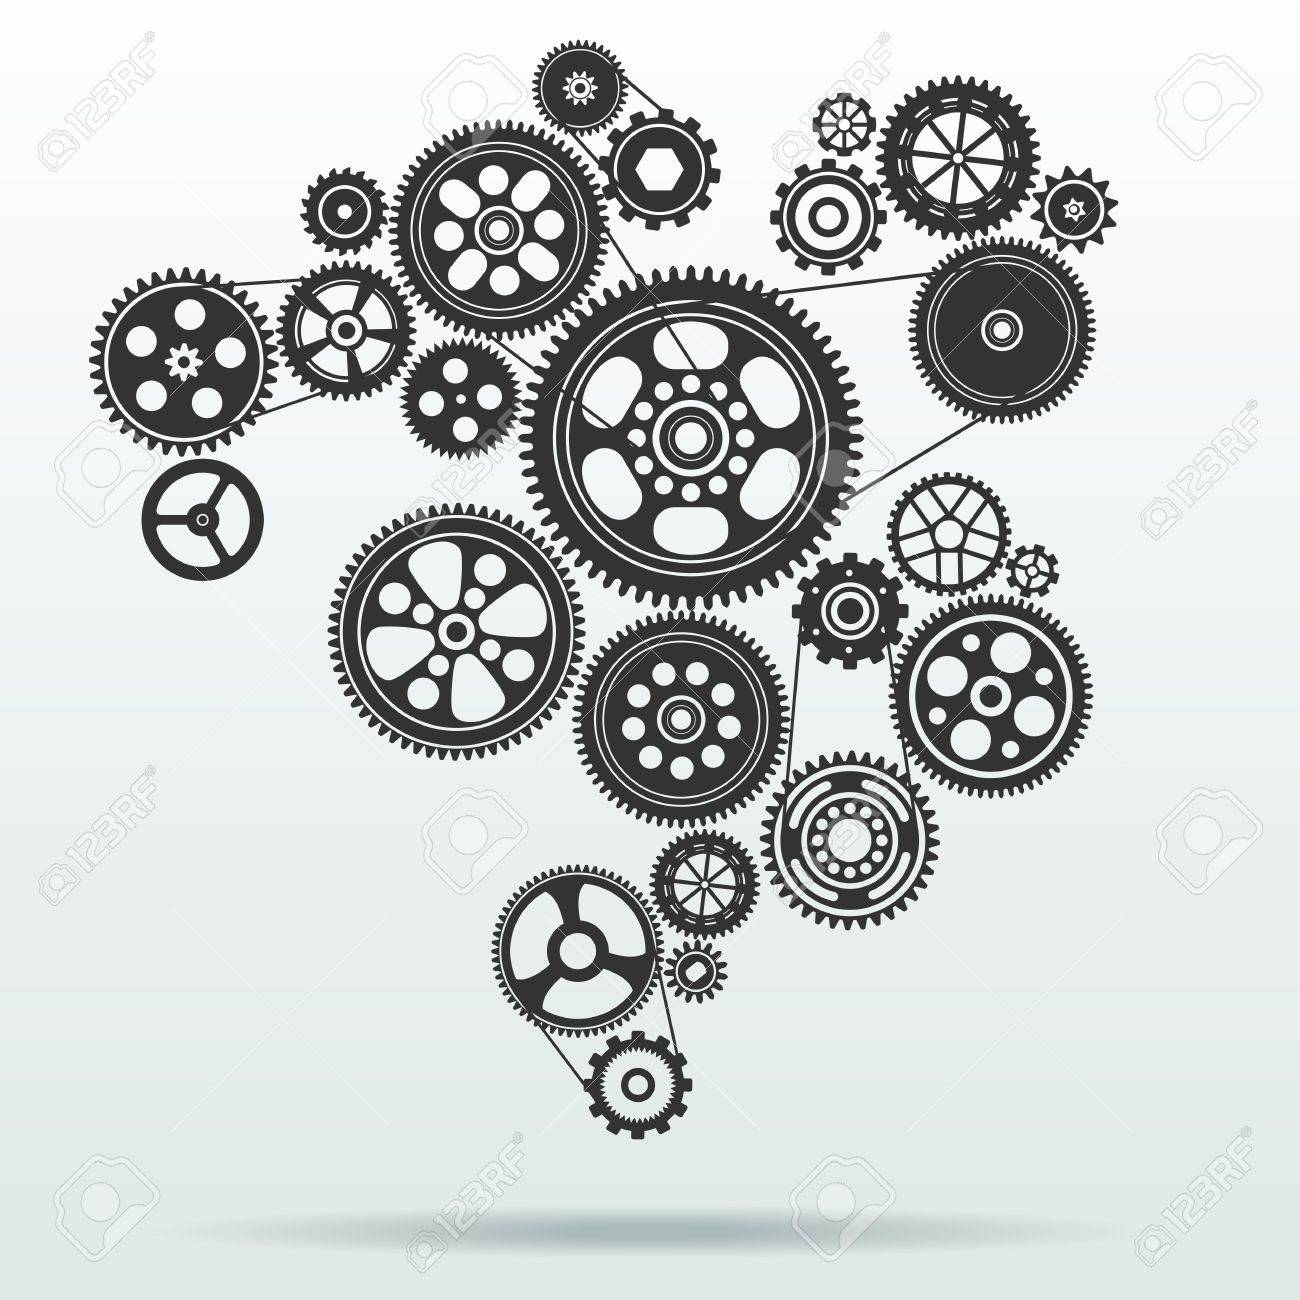 gearwheel mechanism background royalty free cliparts vectors and